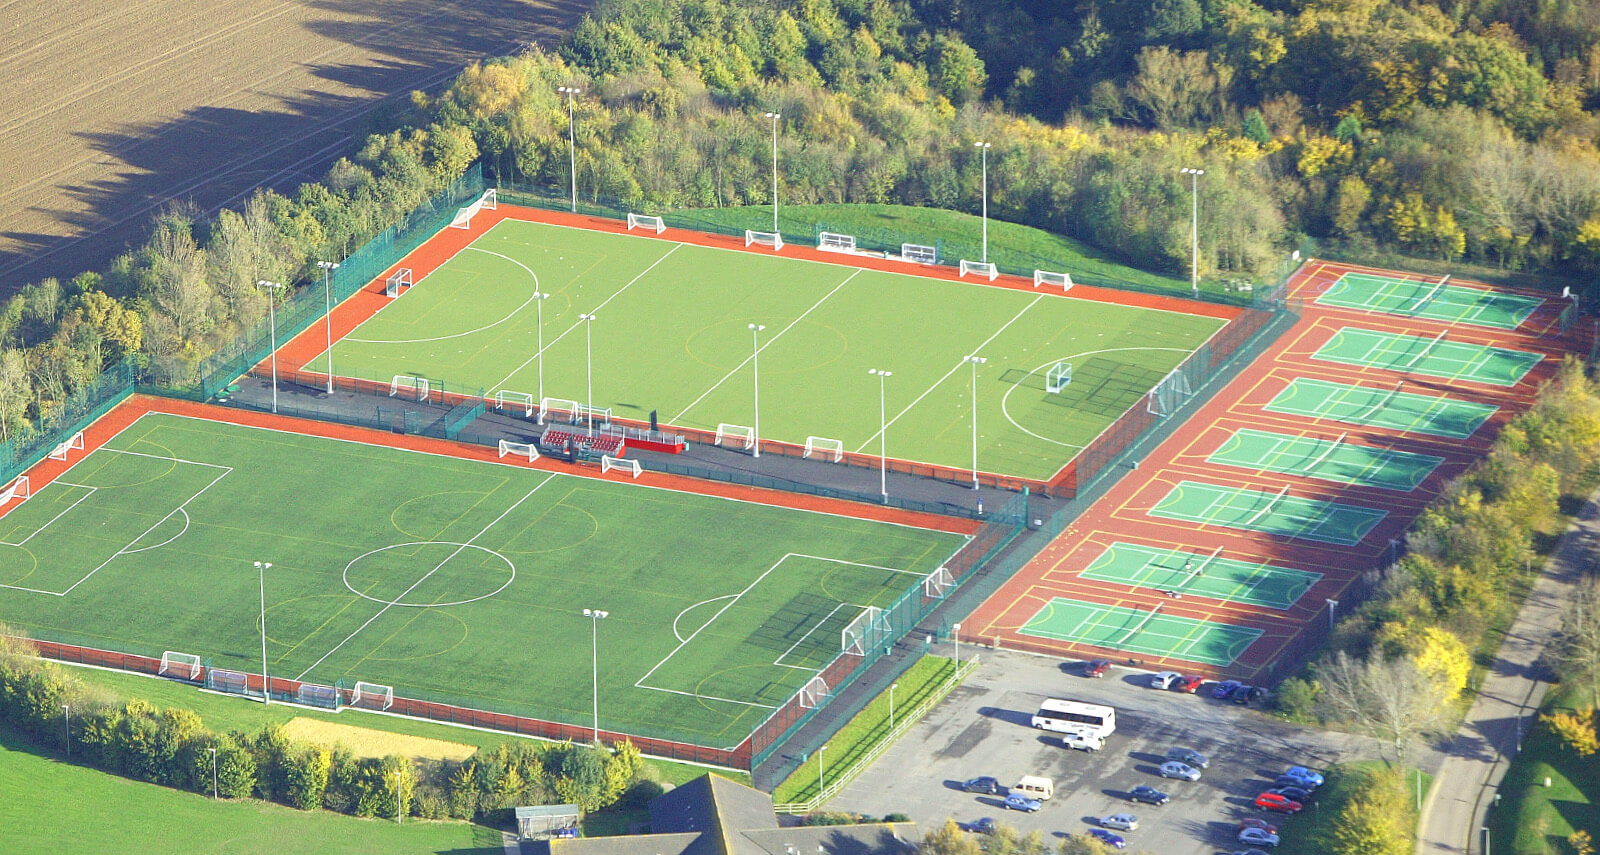 3G Pitch and Athletics Track